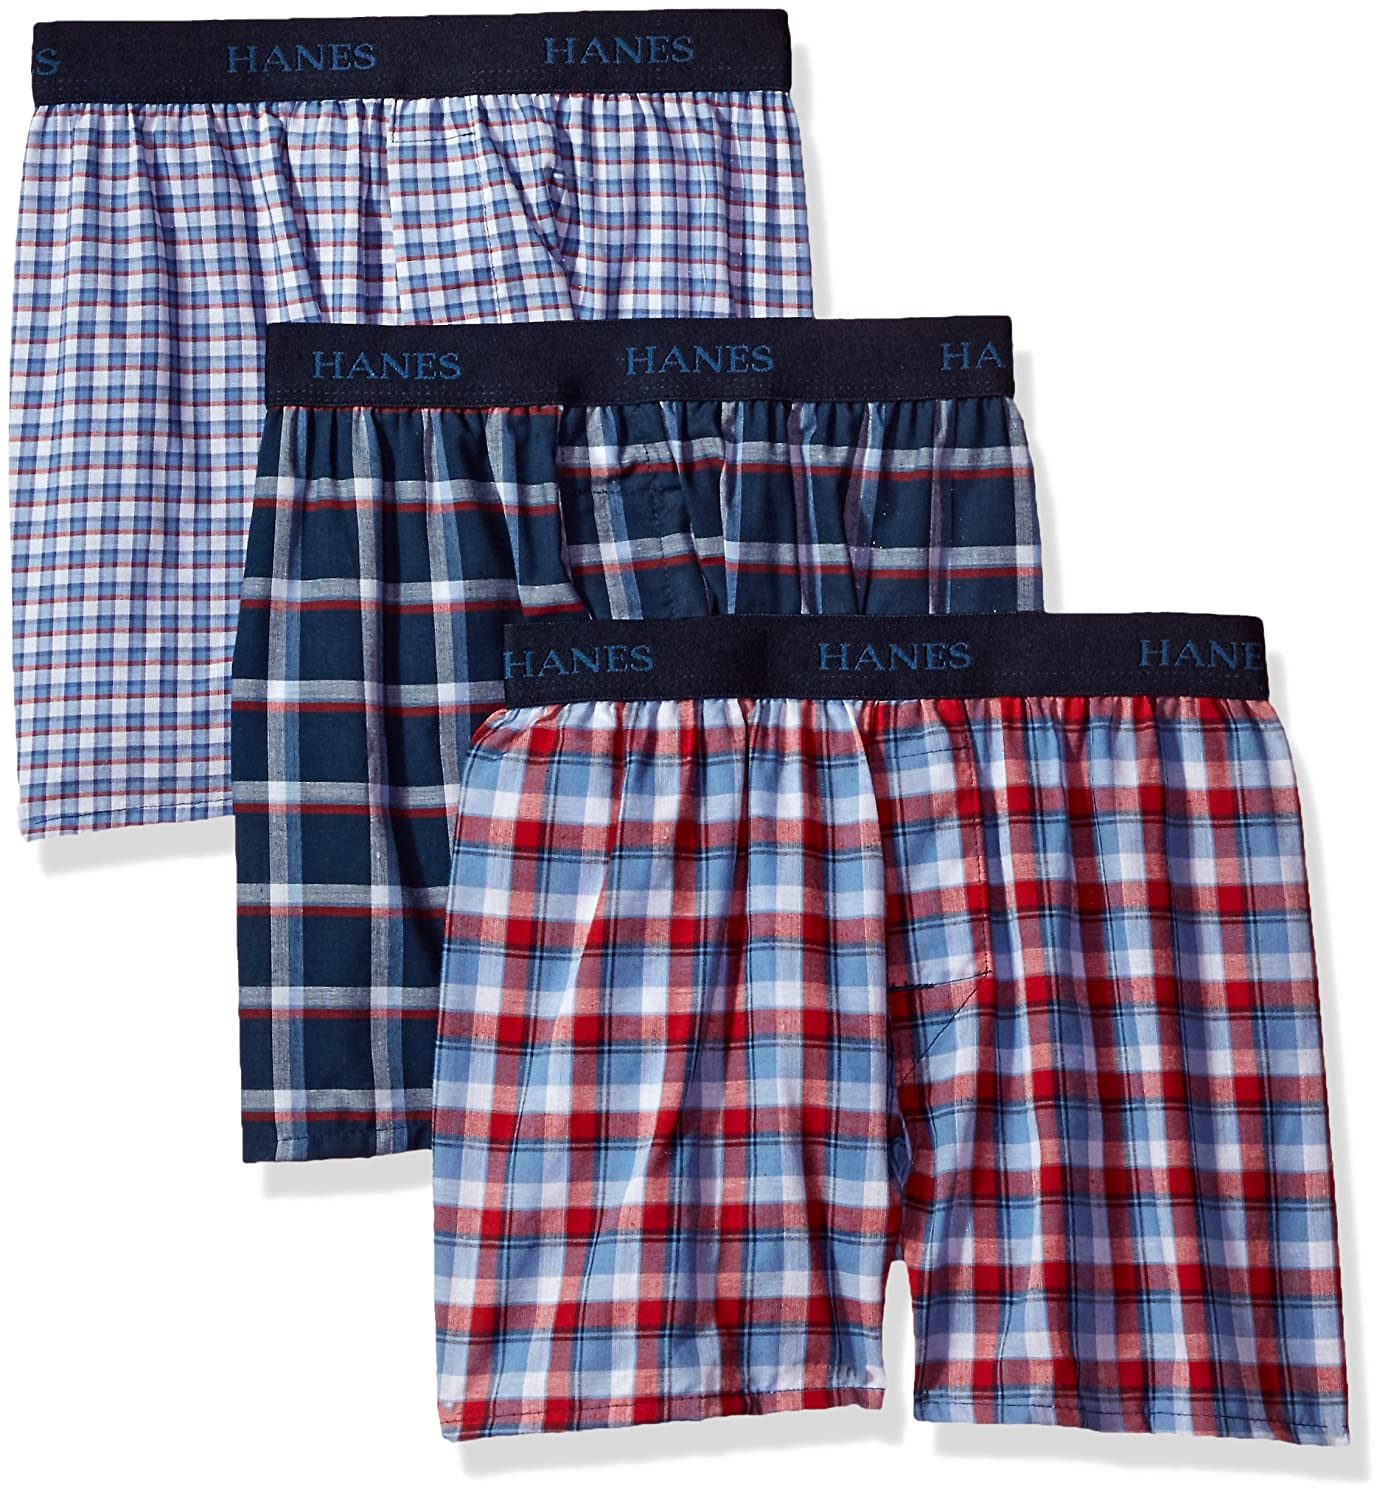 Hanes Big Boys' Ultimate Comfortsoft Plaid Boxers (3 Pack) Hanes Boys 8-20 Underwear BU835U